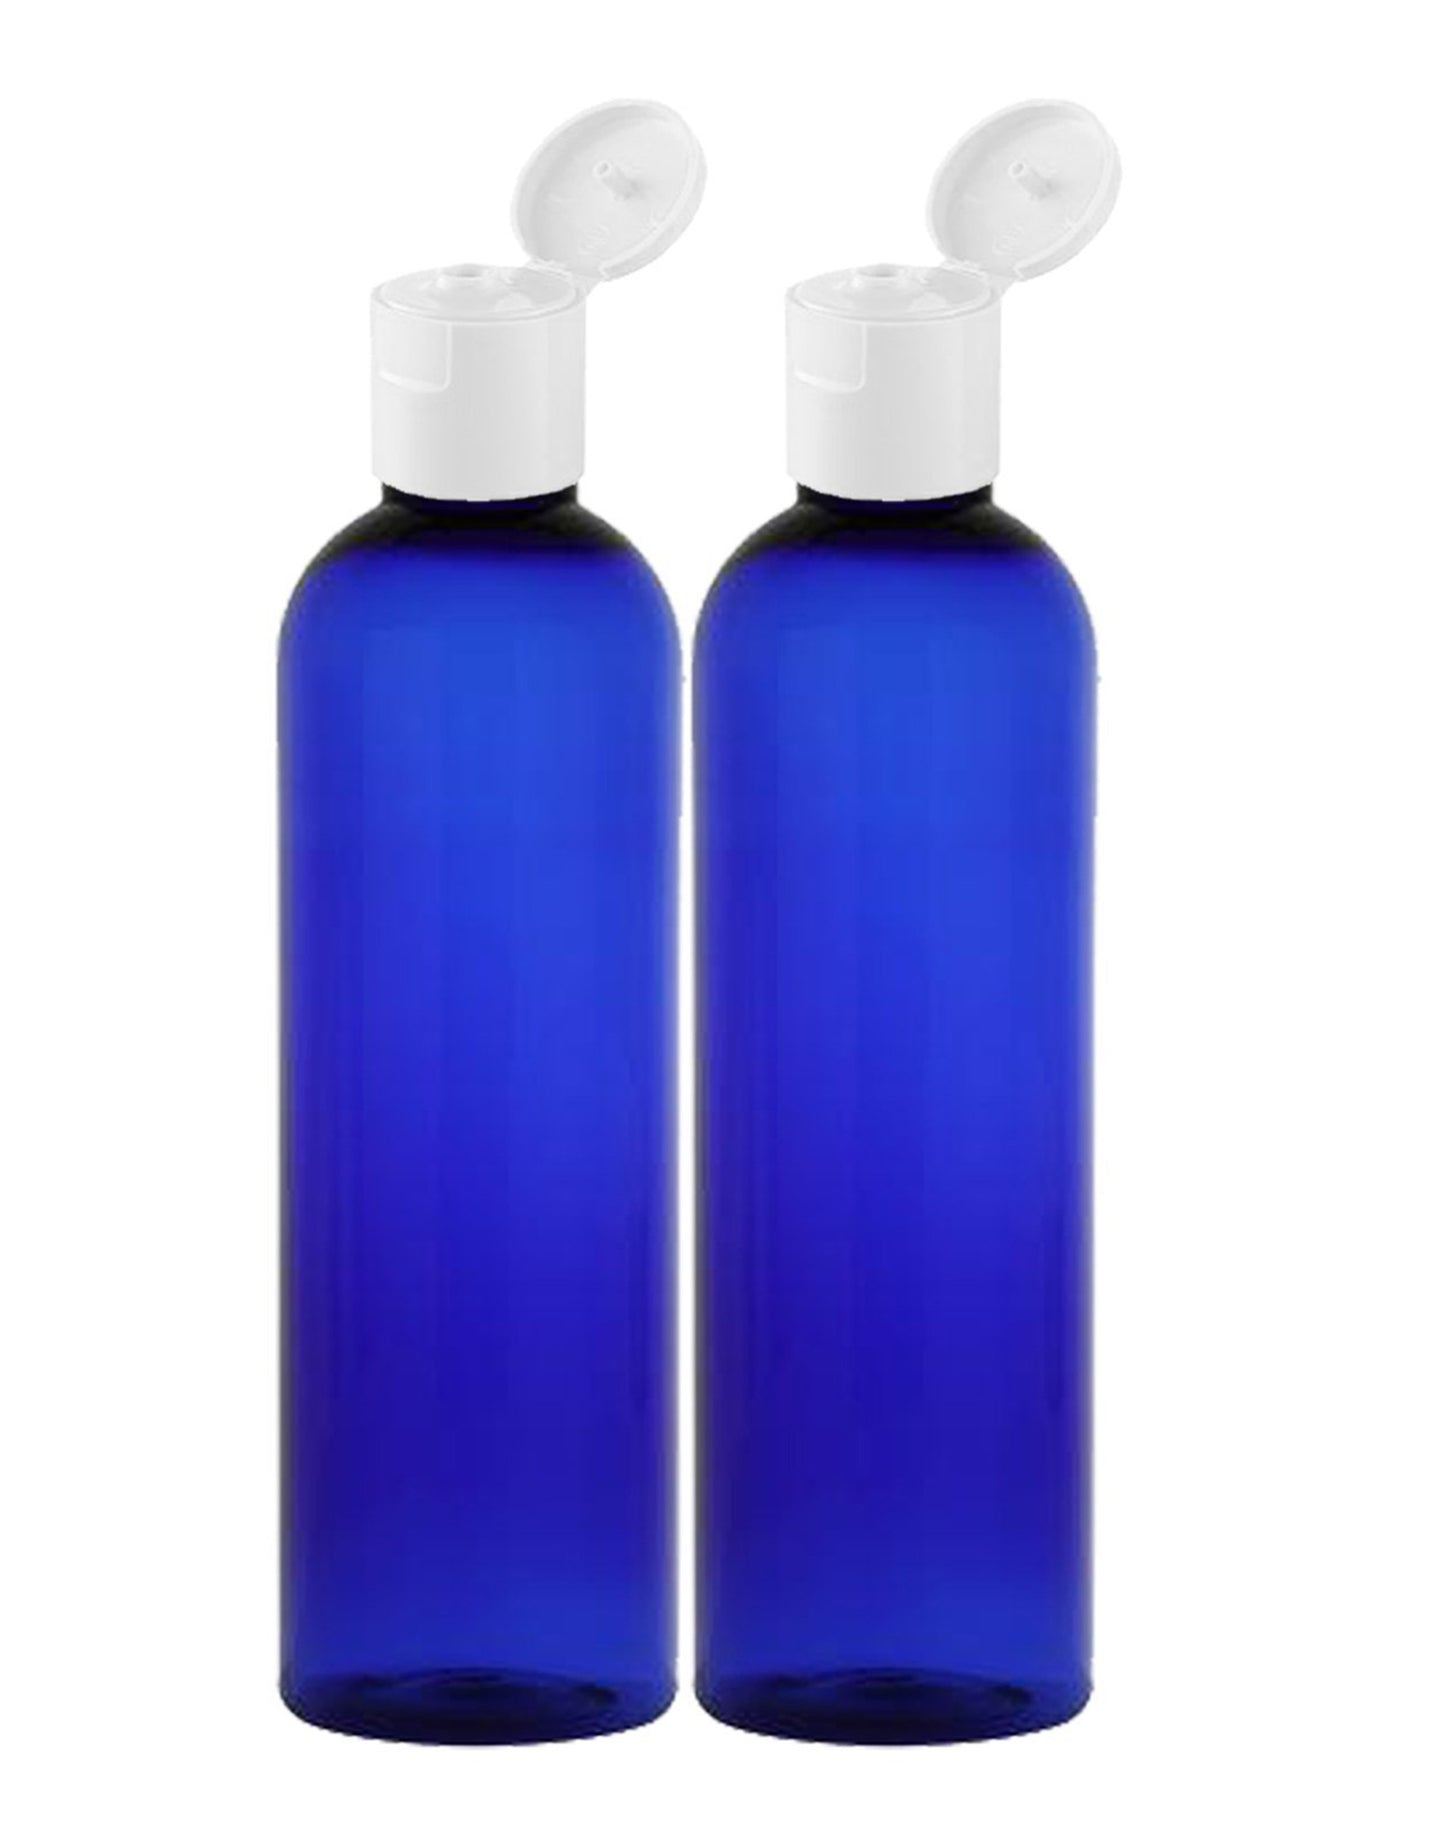 MoYo Natural Labs 8 oz Travel Bottles, Empty Travel Containers with Flip Caps, BPA Free PET Plastic Squeezable Toiletry/Cosmetic Bottles (2 pack, Cobalt Blue)